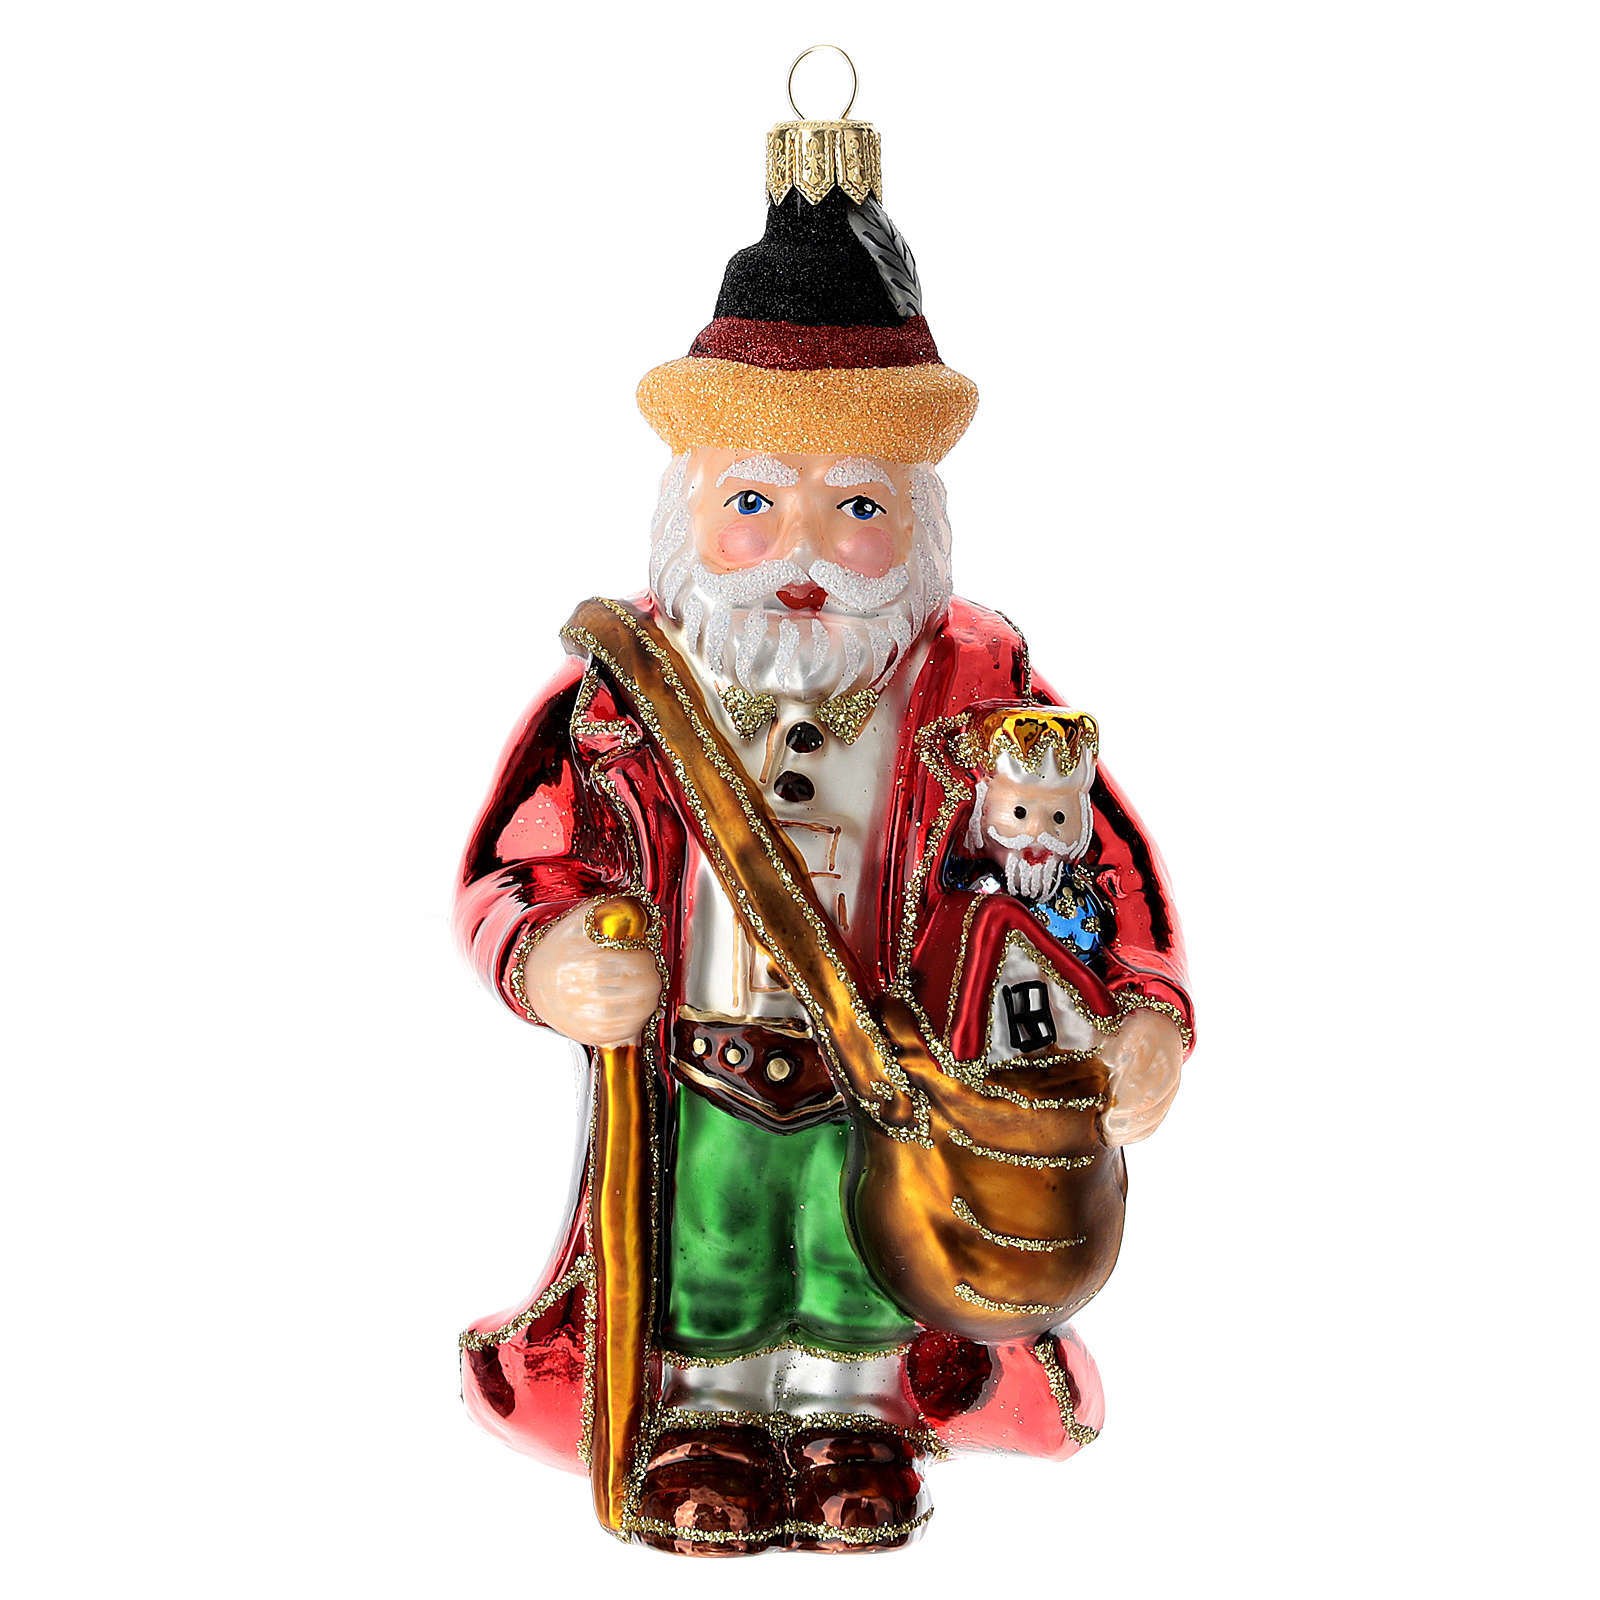 Blown glass Christmas ornament, Santa Claus in Germany 4